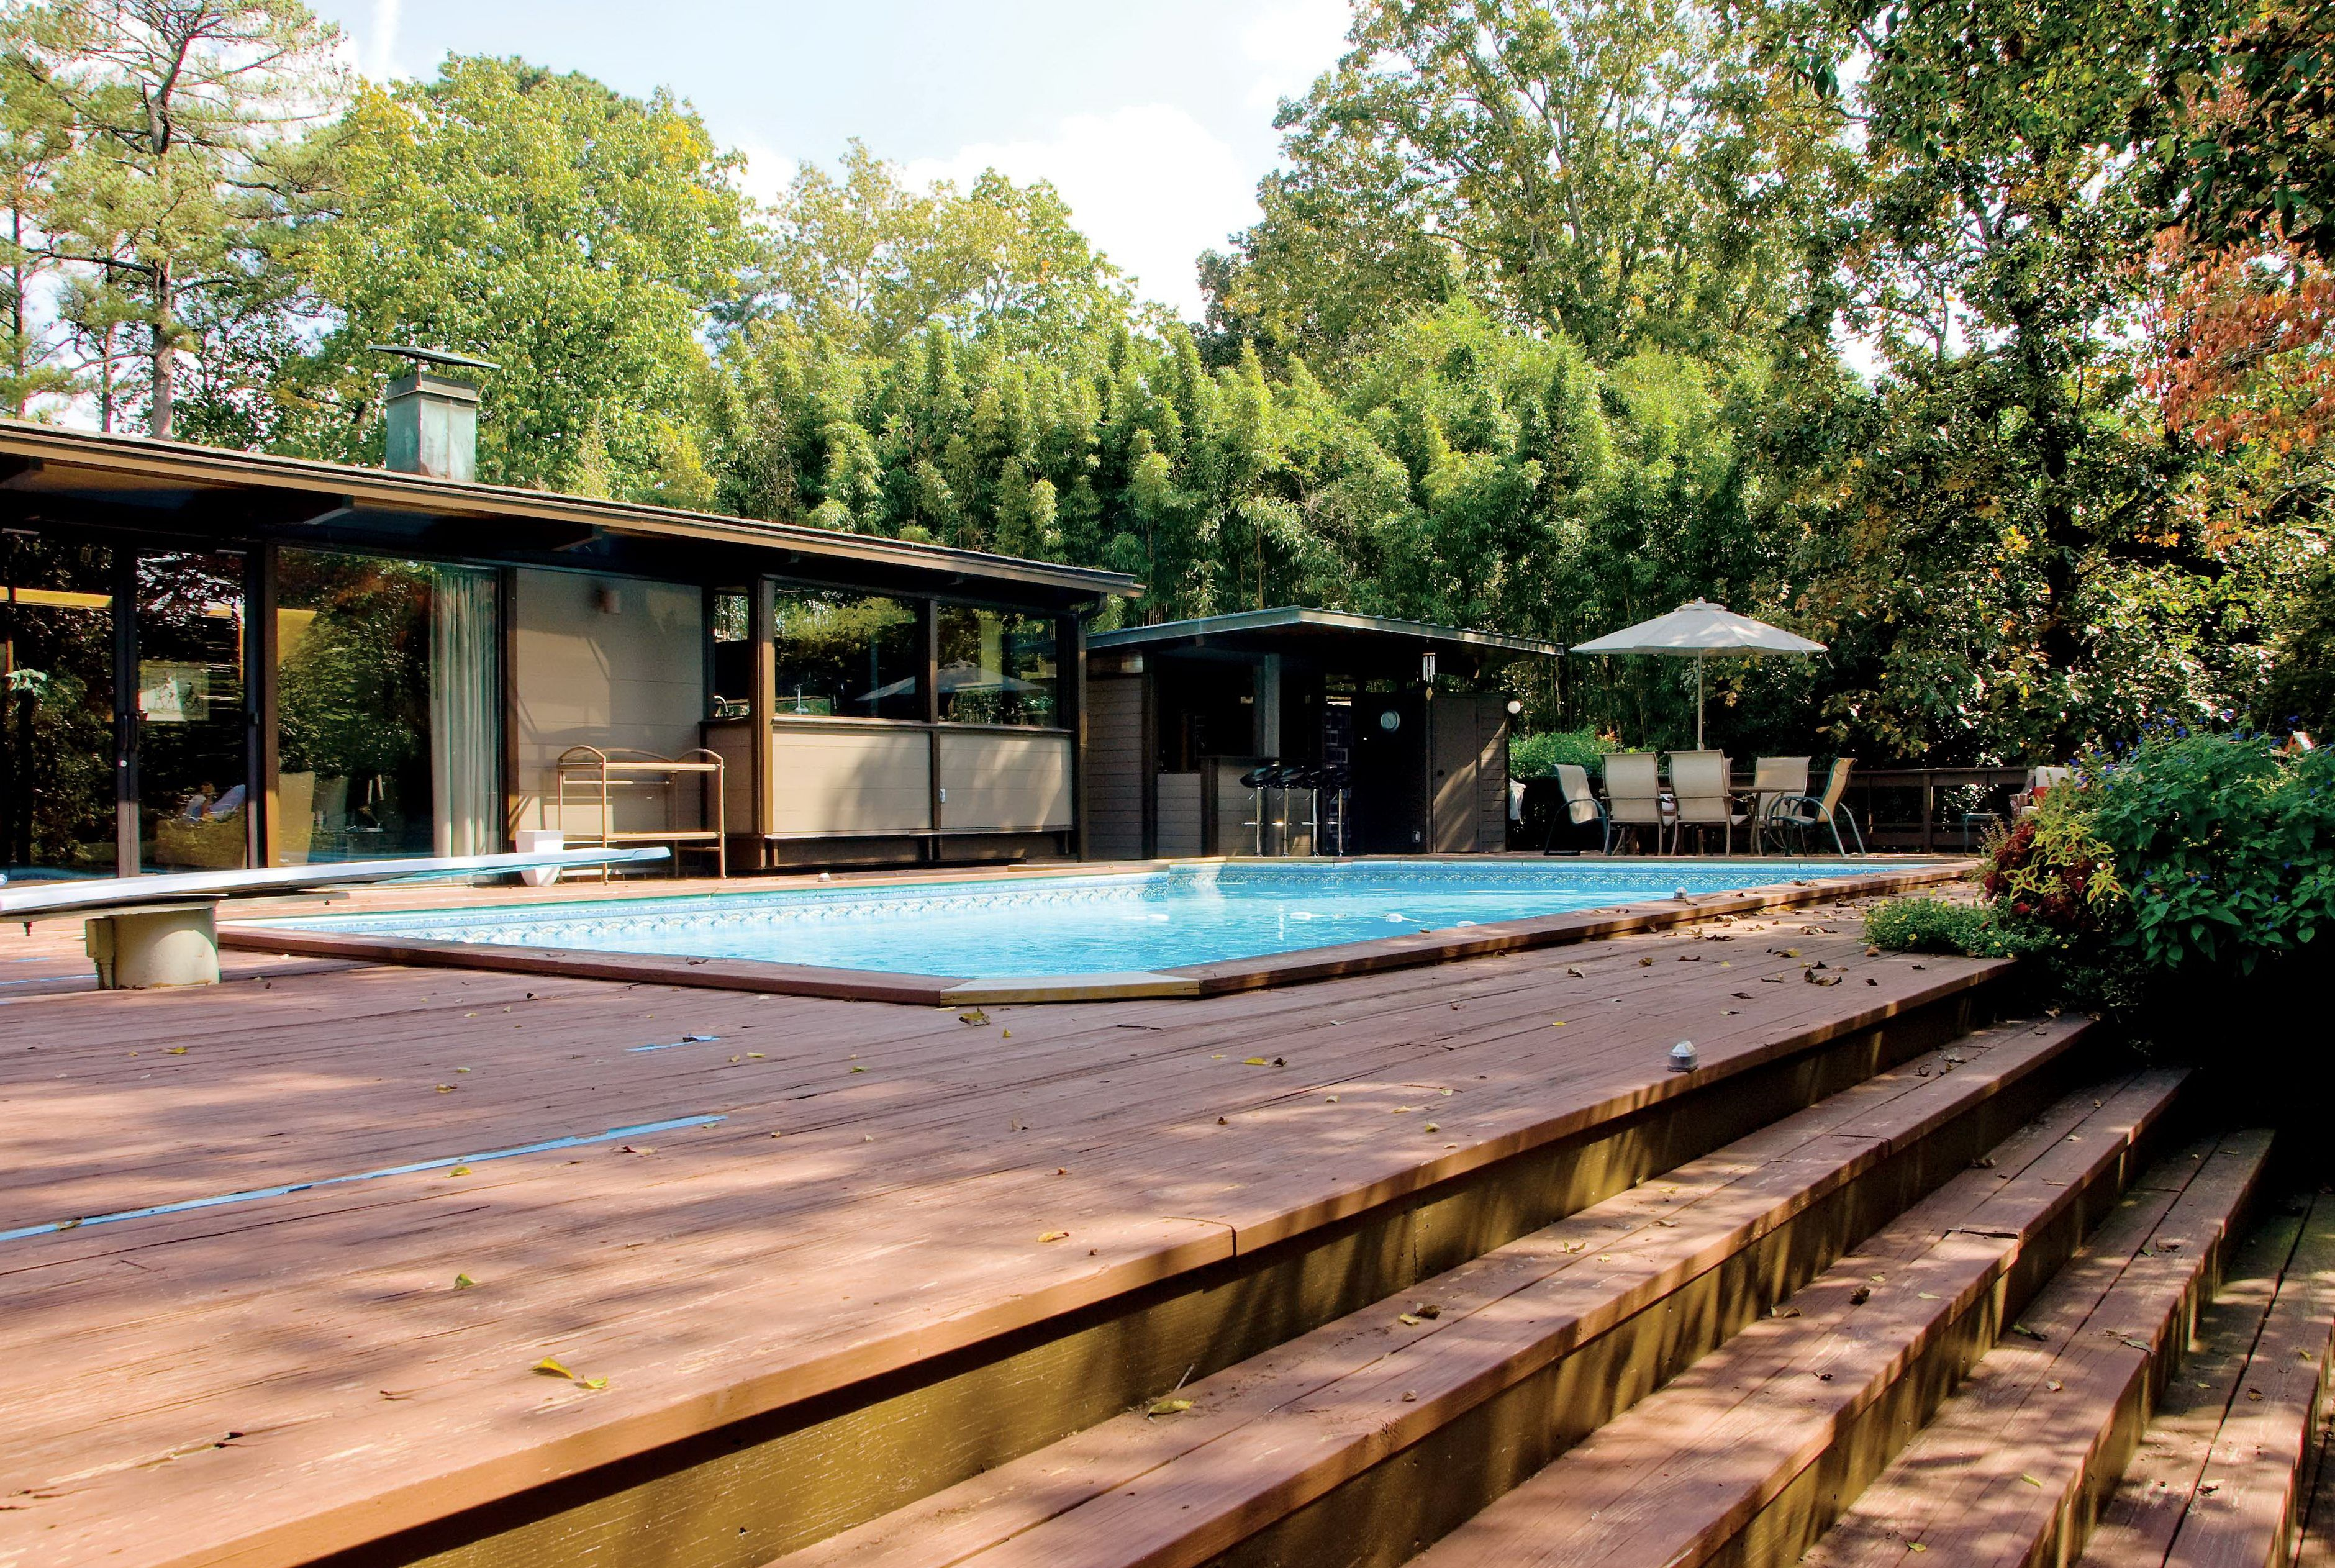 Best Small Deck Ideas: Decorating, Remodel & Photos ...